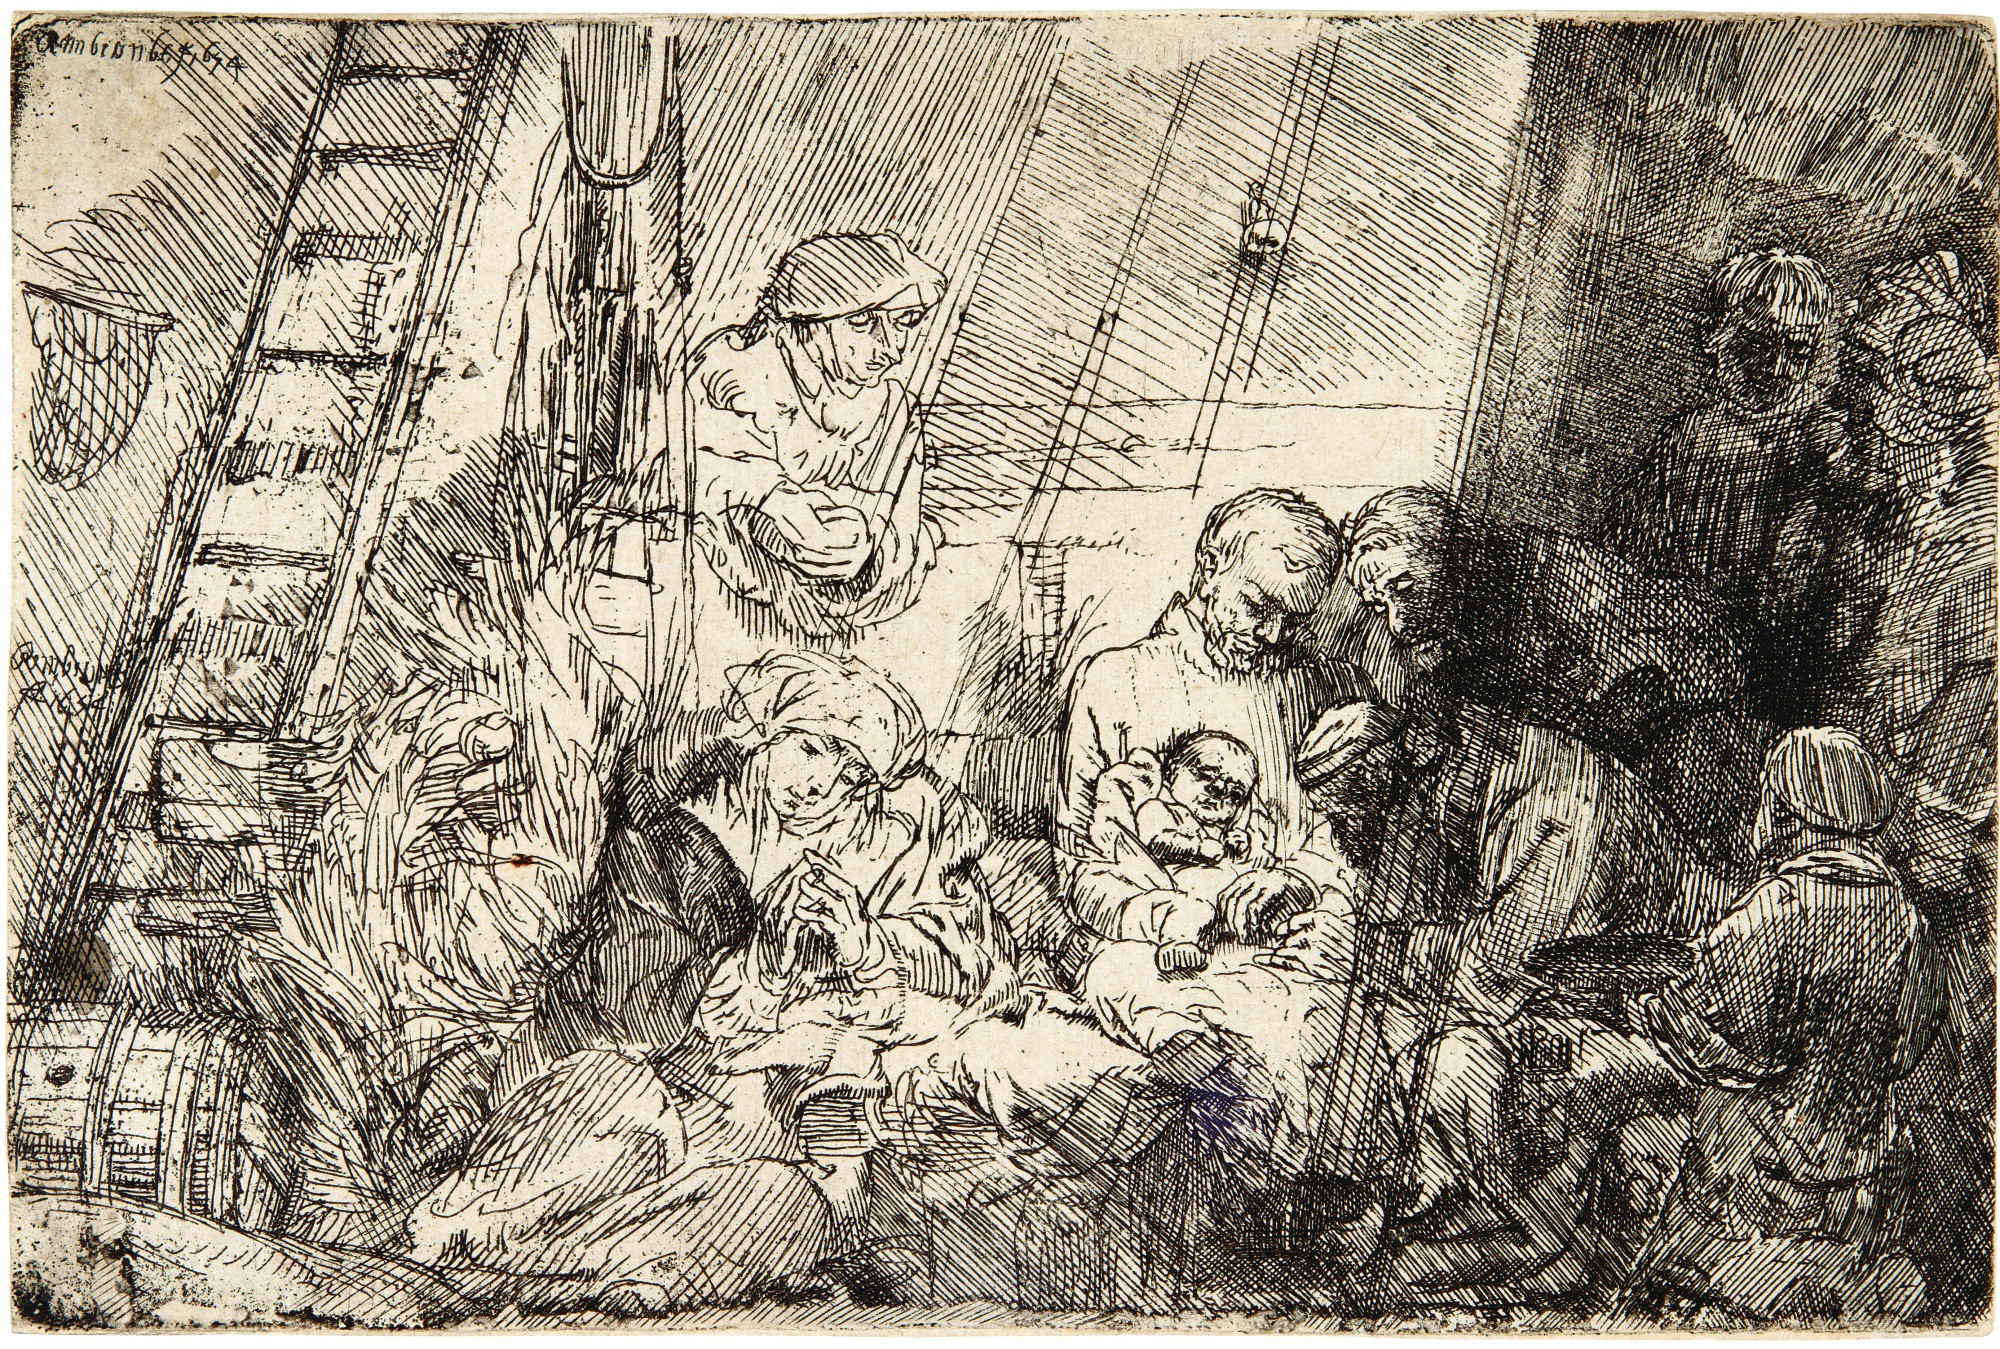 REMBRANDT HARMENSZ. VAN RIJN | THE CIRCUMCISION IN THE STABLE (B., HOLL. 47; NEW HOLL. 280; H. 274)